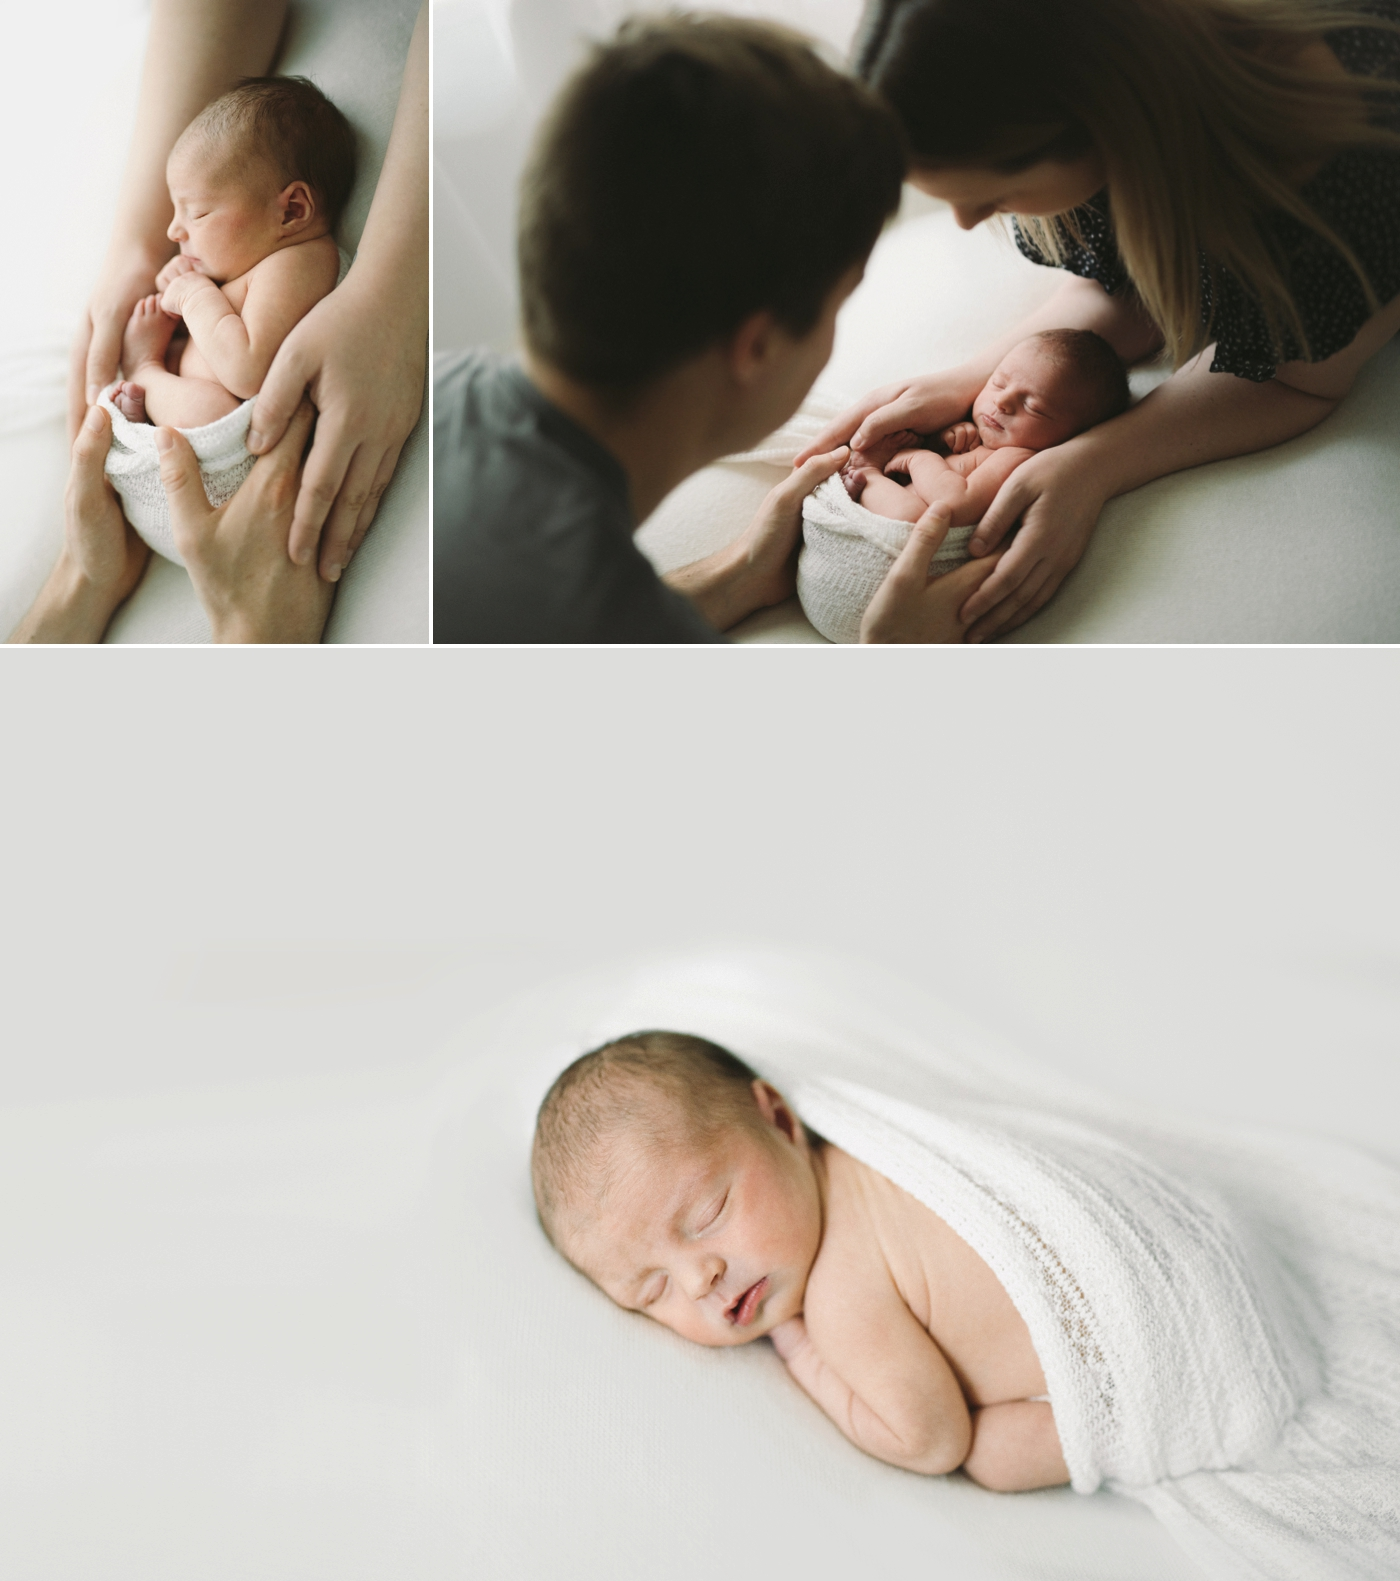 Baby Zaidee - Natural Newborn Photography in Adelaide - Simple Newborn Photography - Beautiful Newborn Photography - Katherine Schultz - www.katherineschultzphotography.com_0006.jpg